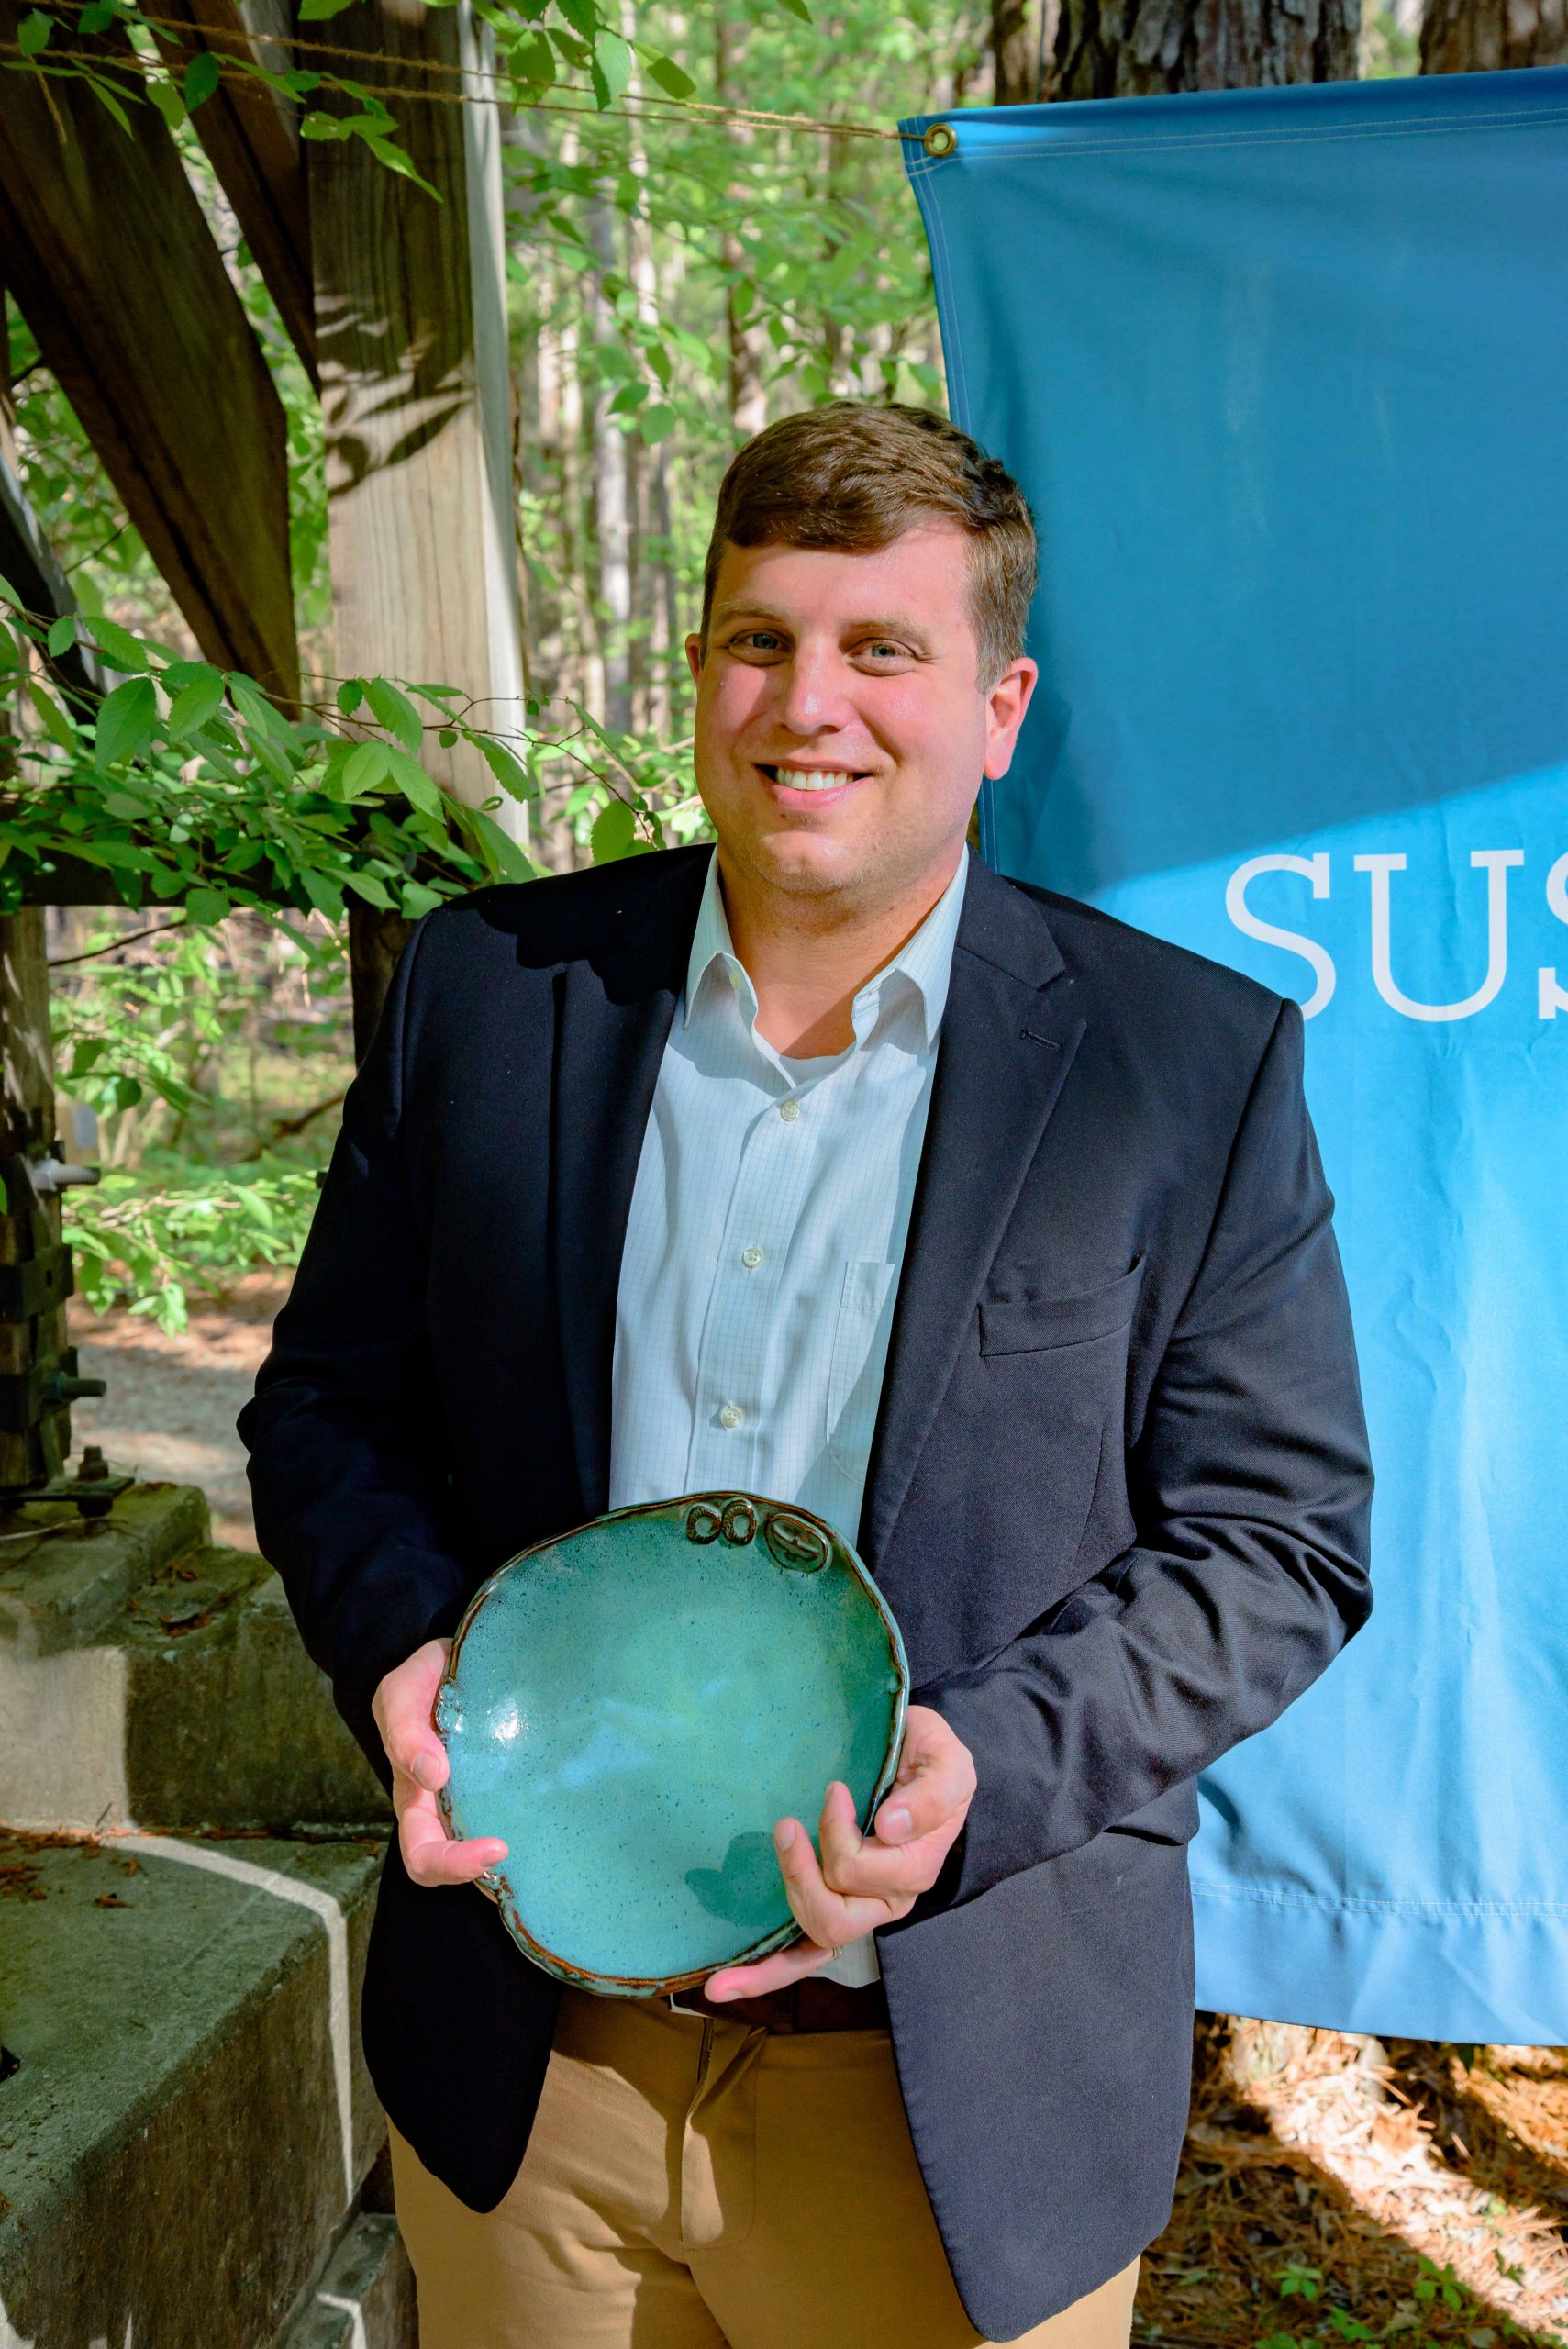 Photo of Ben Burmester with his Spirit of Sustainability Award